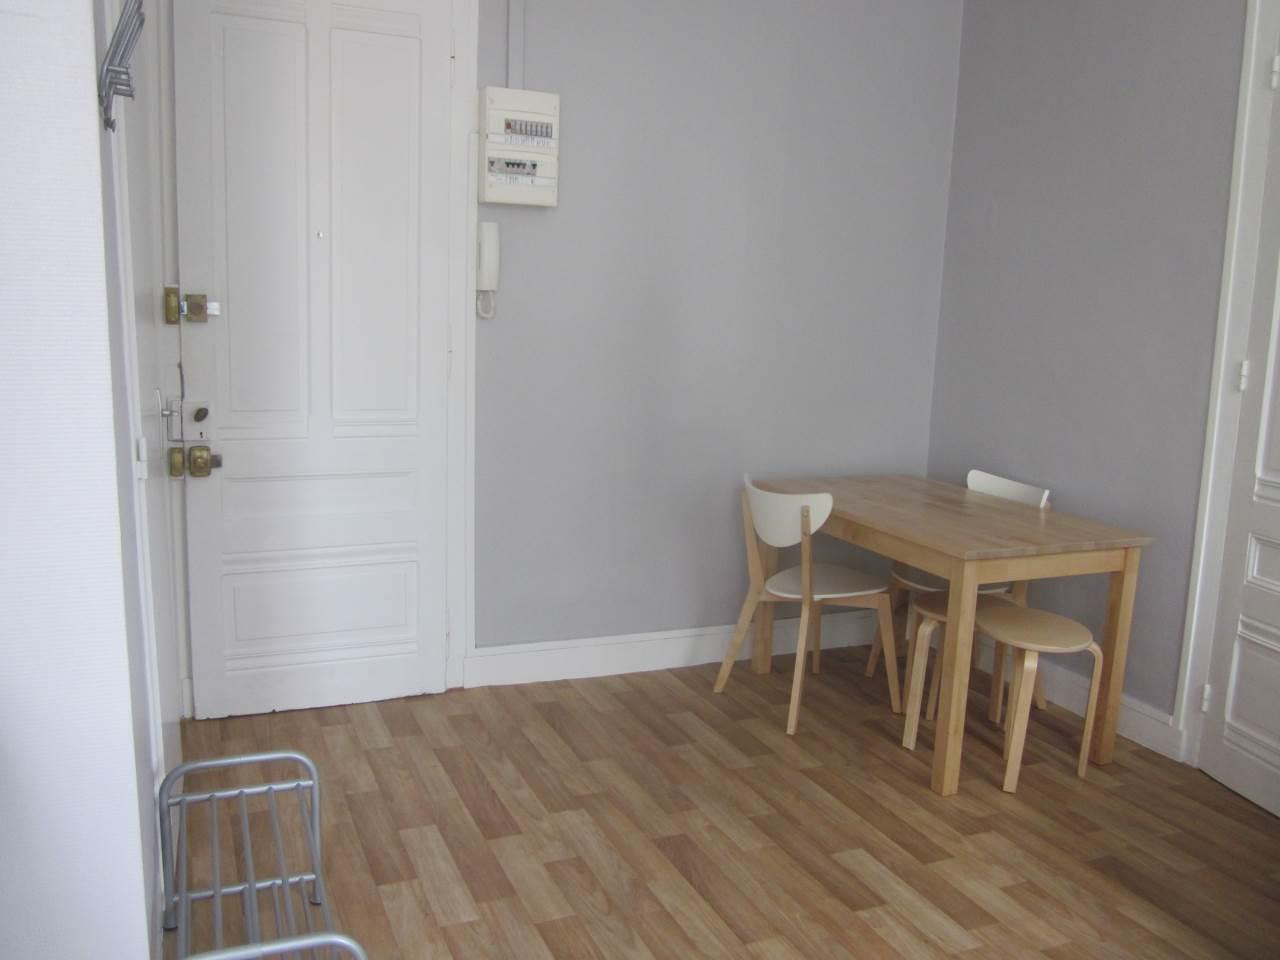 Location Appartement 2 Pi Ces Saint Tienne 42000 - Location Studio Meuble  Saint Etienne .